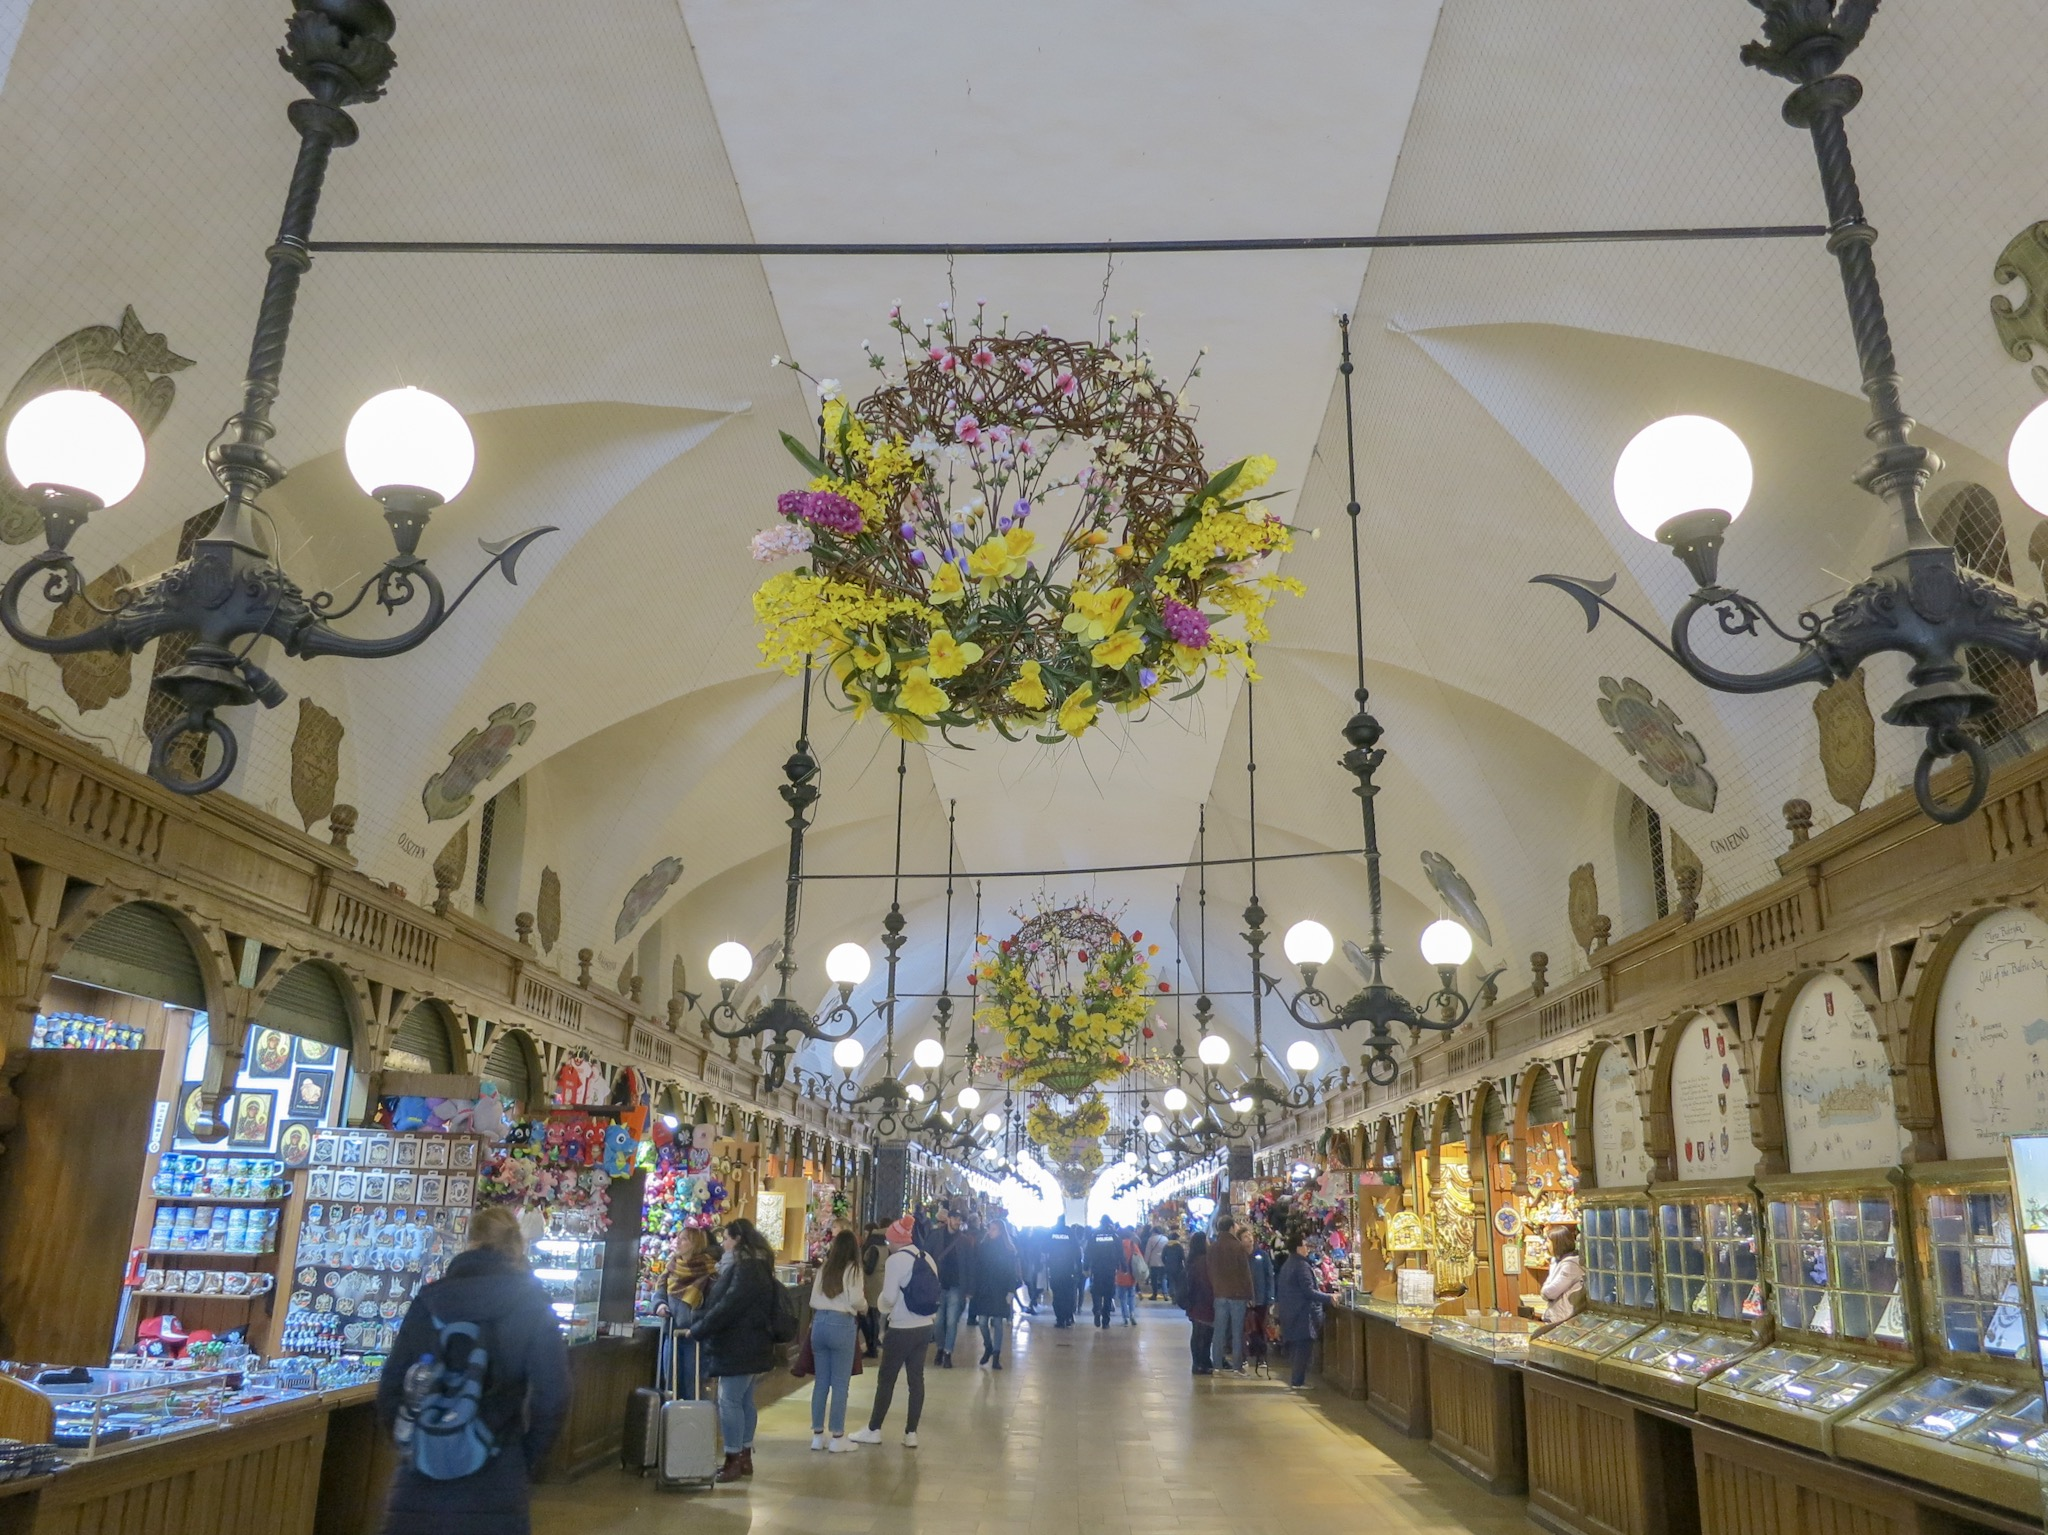 Easter decorations in Krakow's Cloth Hall